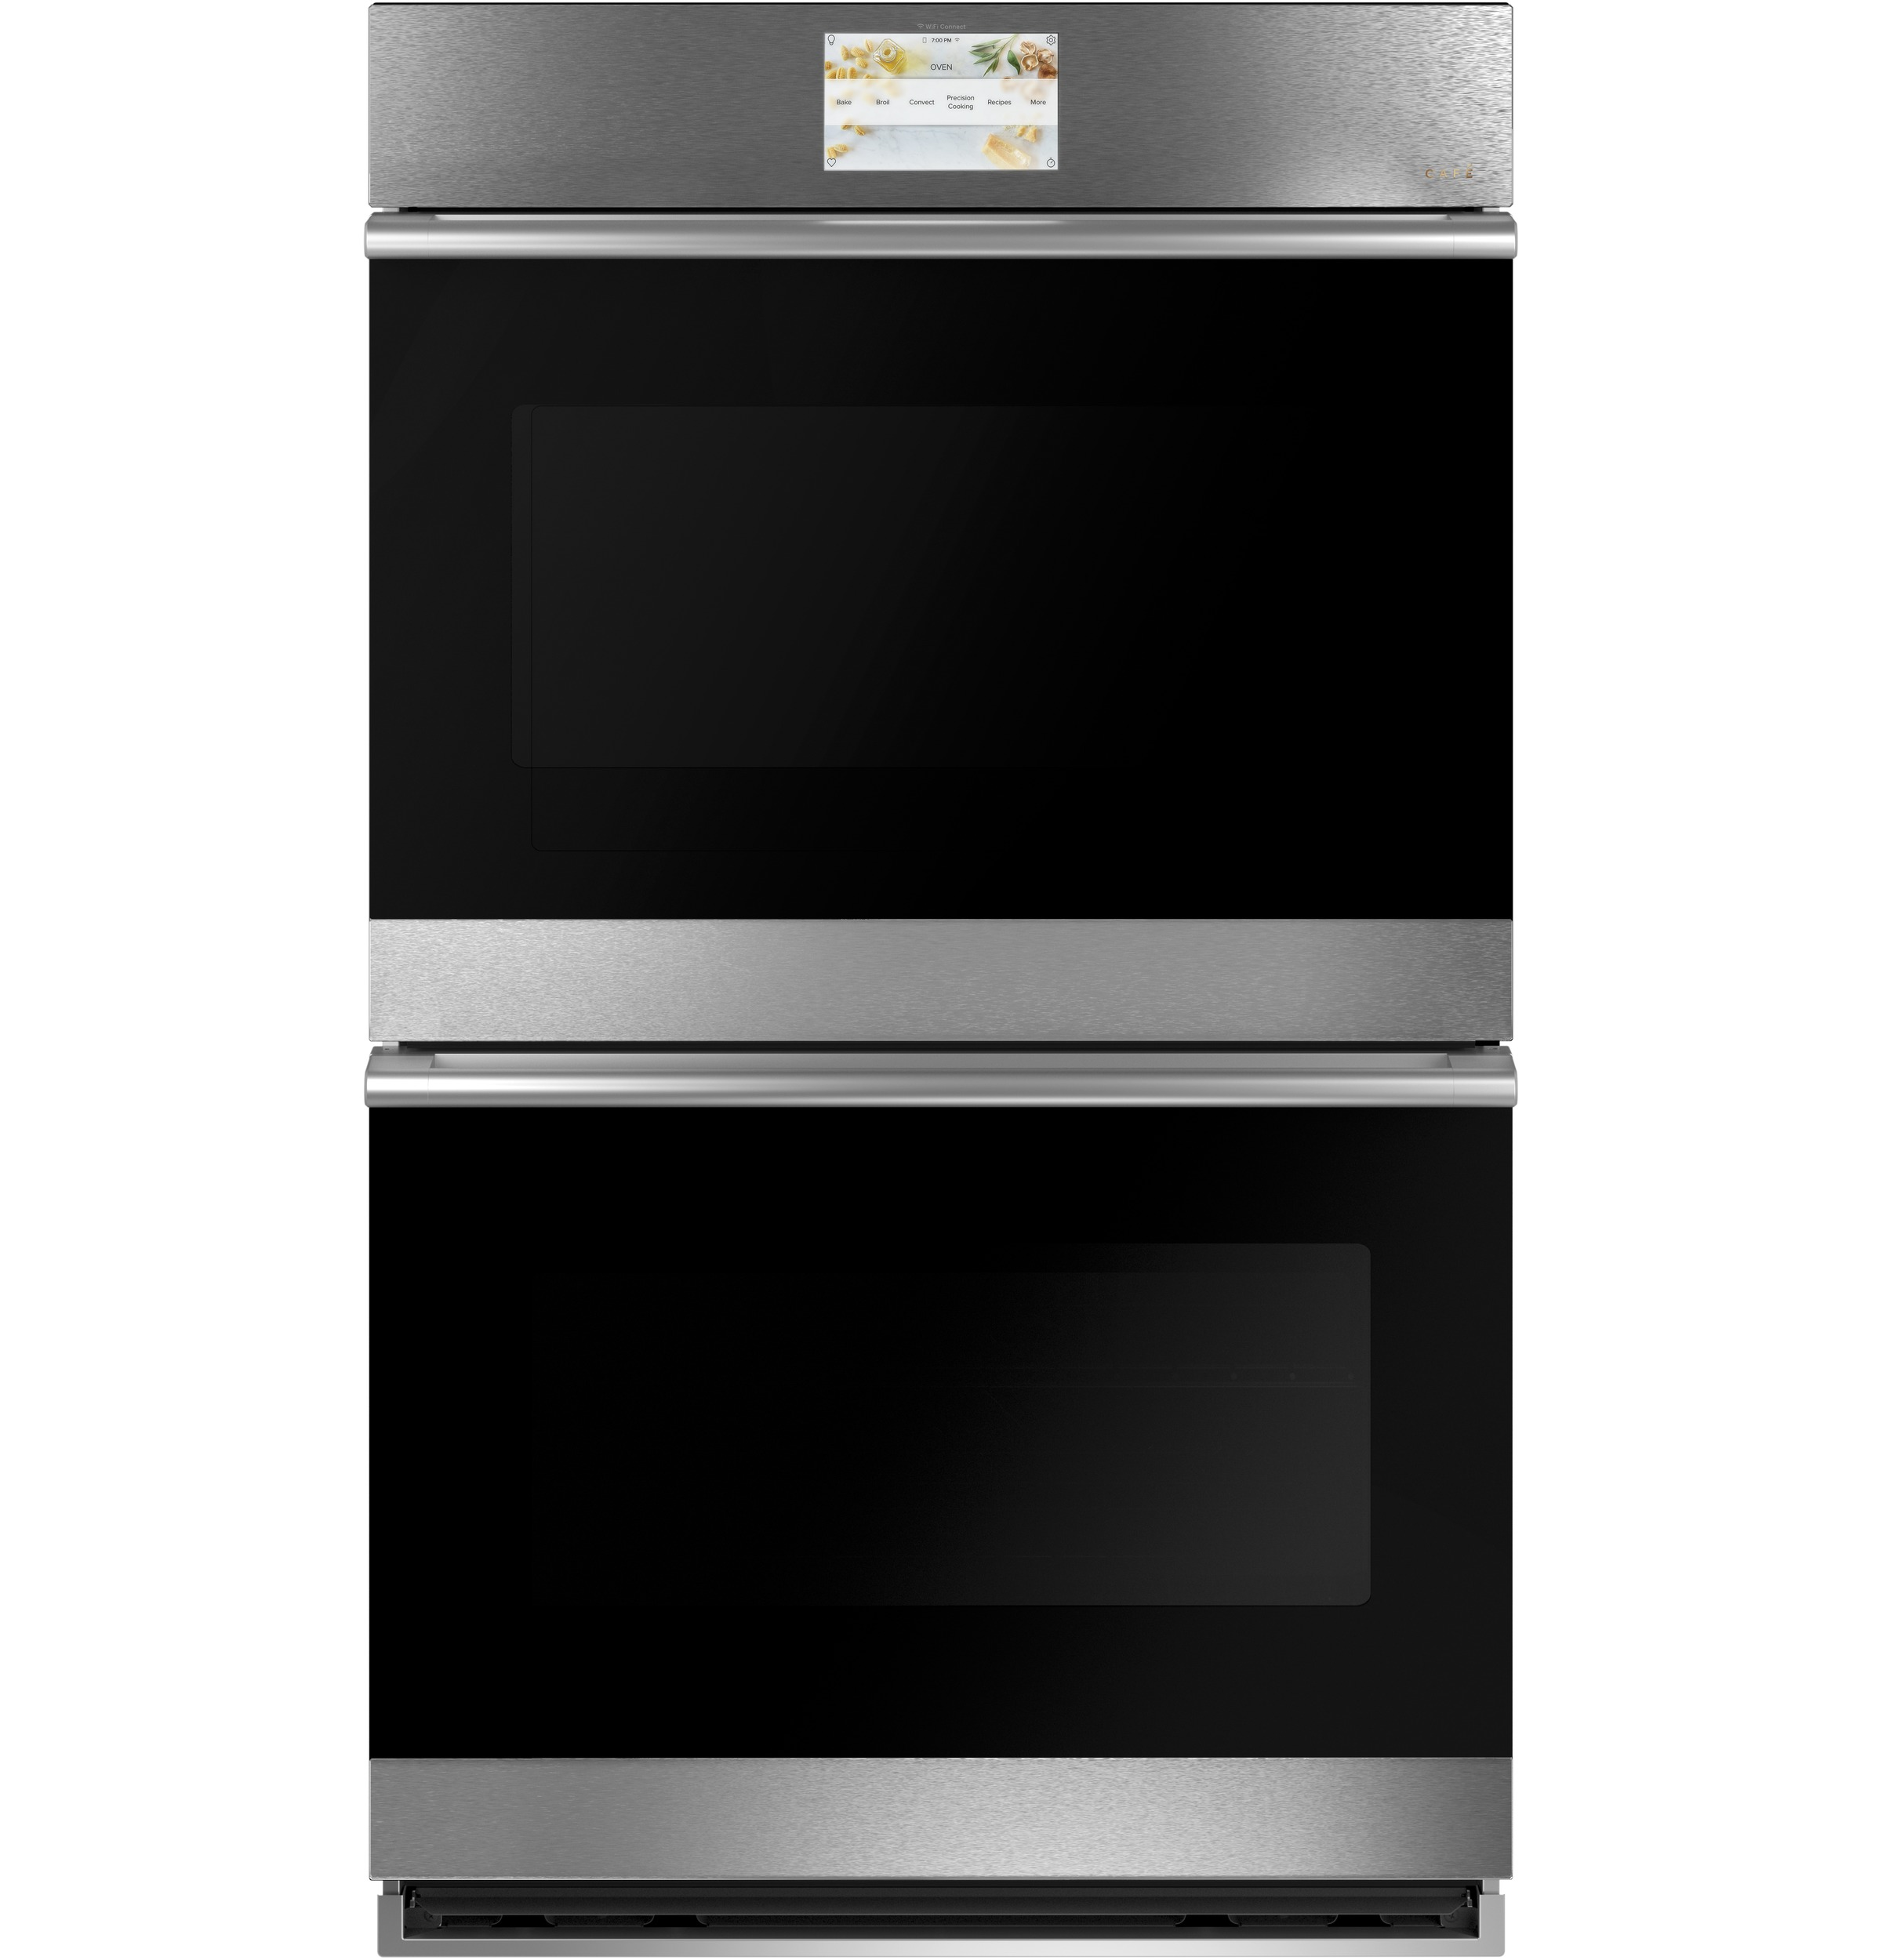 "Cafe Café™ 30"" Smart Double Wall Oven with Convection in Platinum Glass"